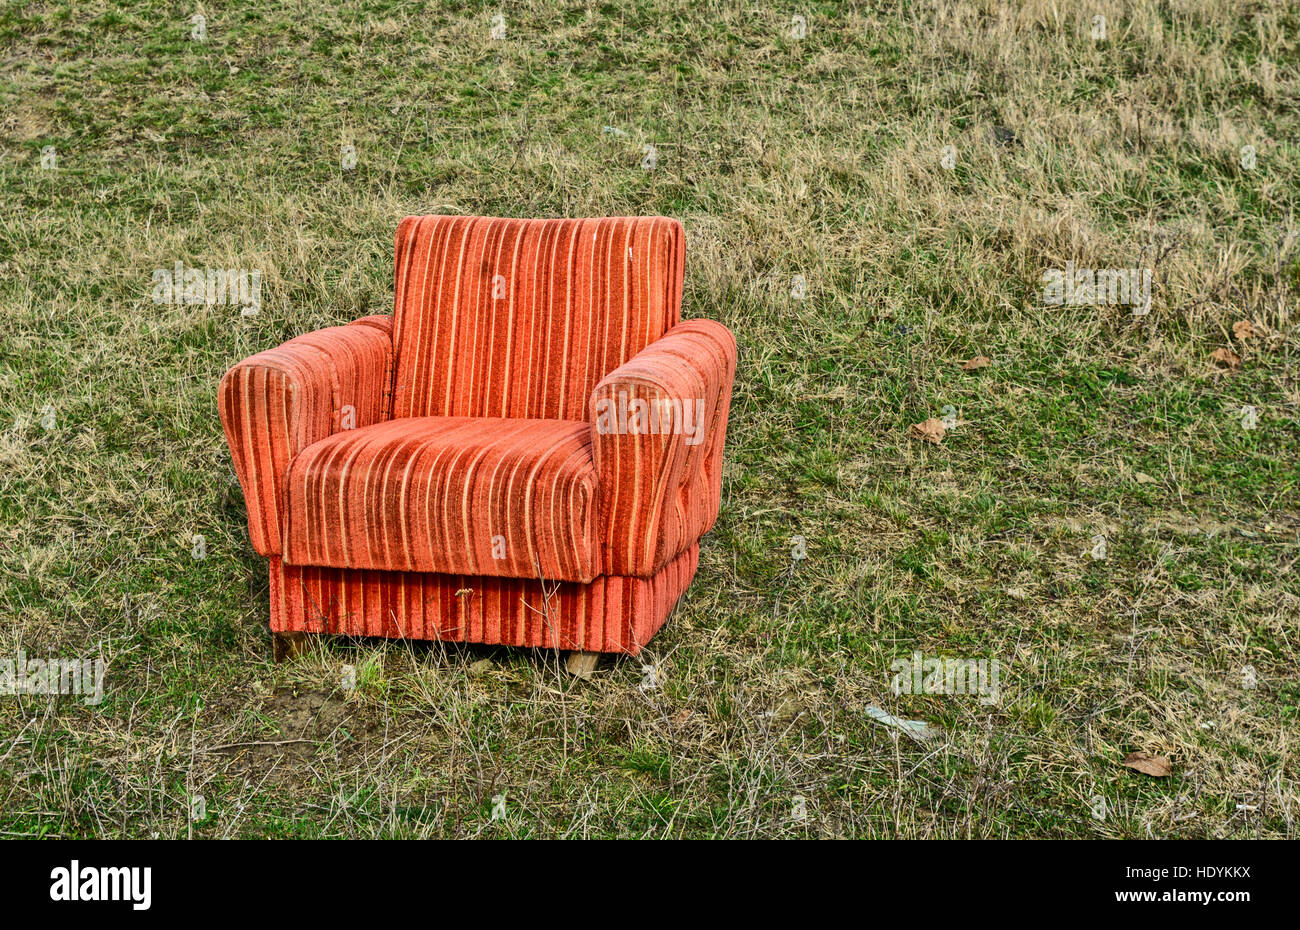 The Old Armchair Left In The Open Field.